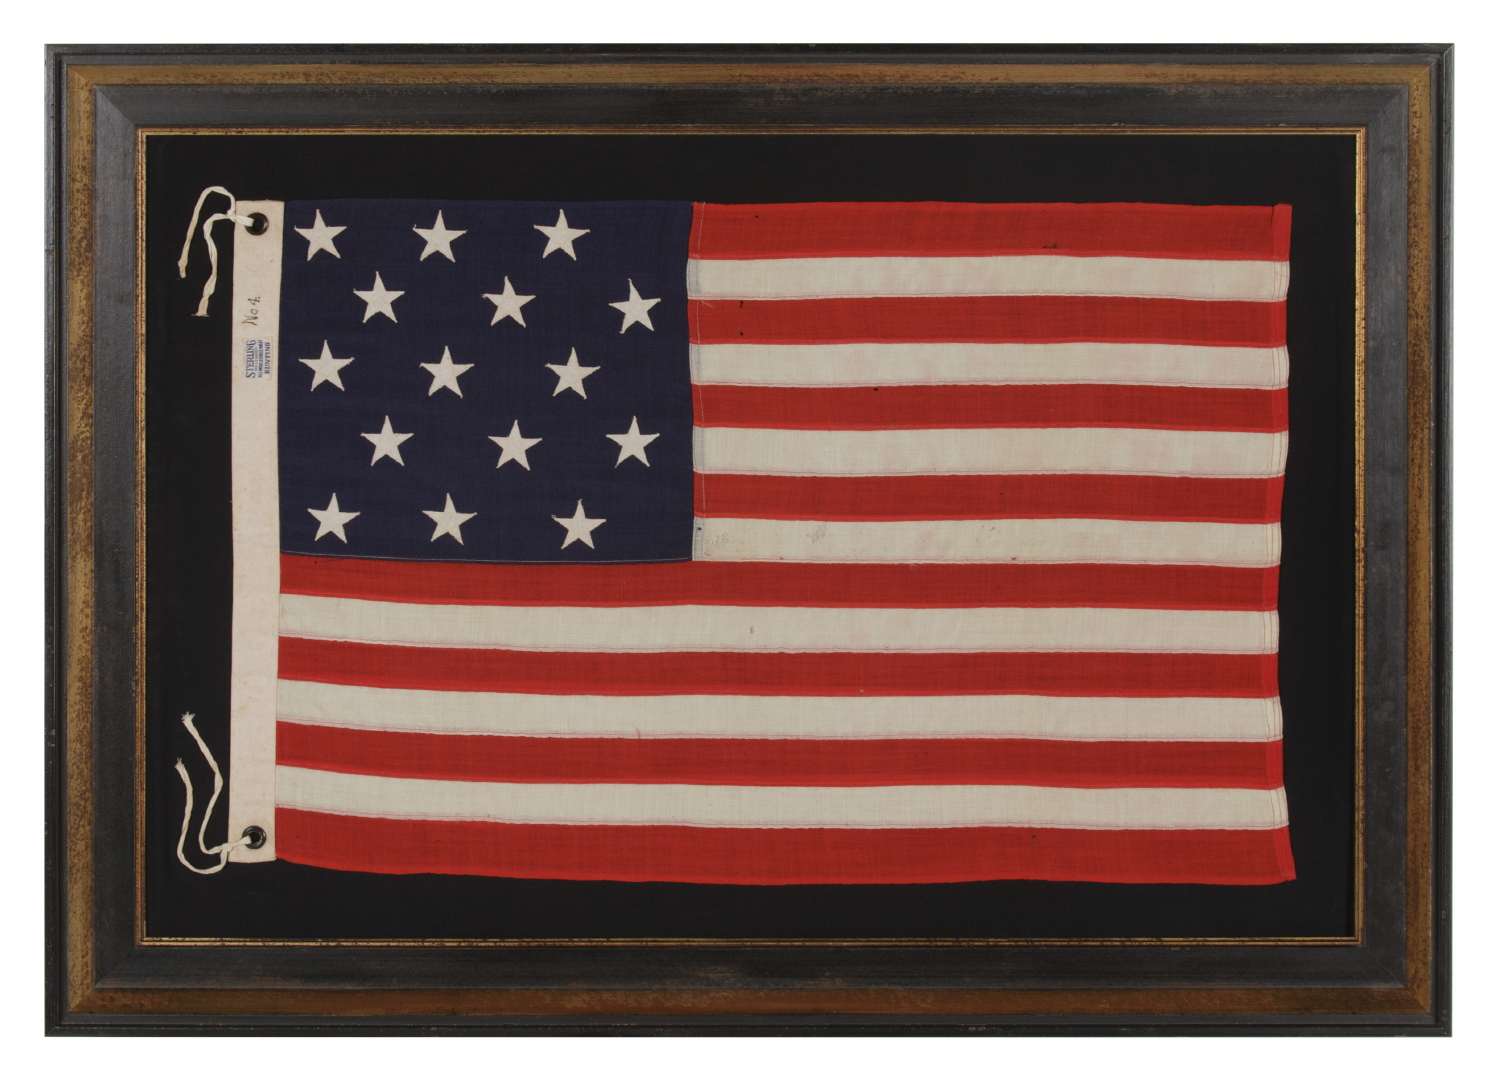 Jeff Bridgman Antique Flags and Painted Furniture - 15 STARS AND 15 ...